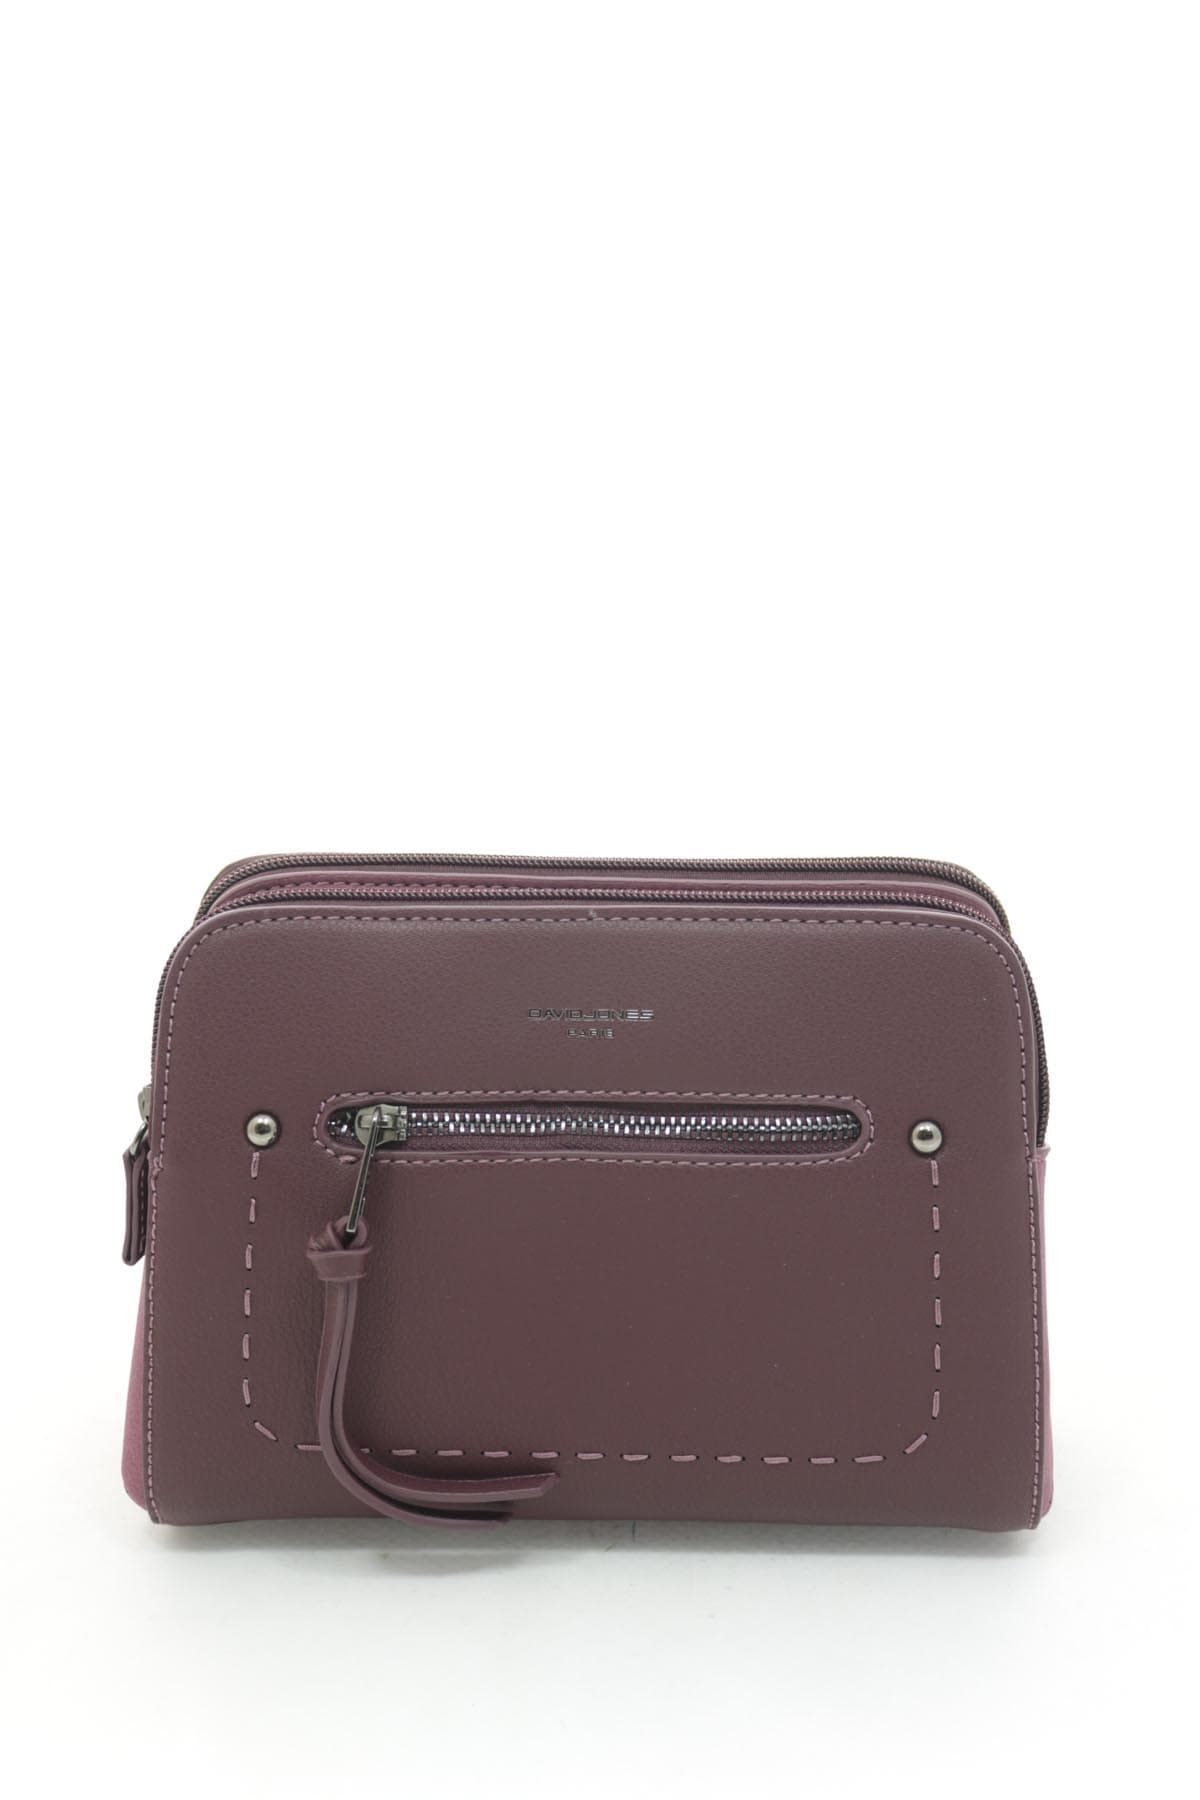 Клатч David Jones 5386 Dark Bordeaux